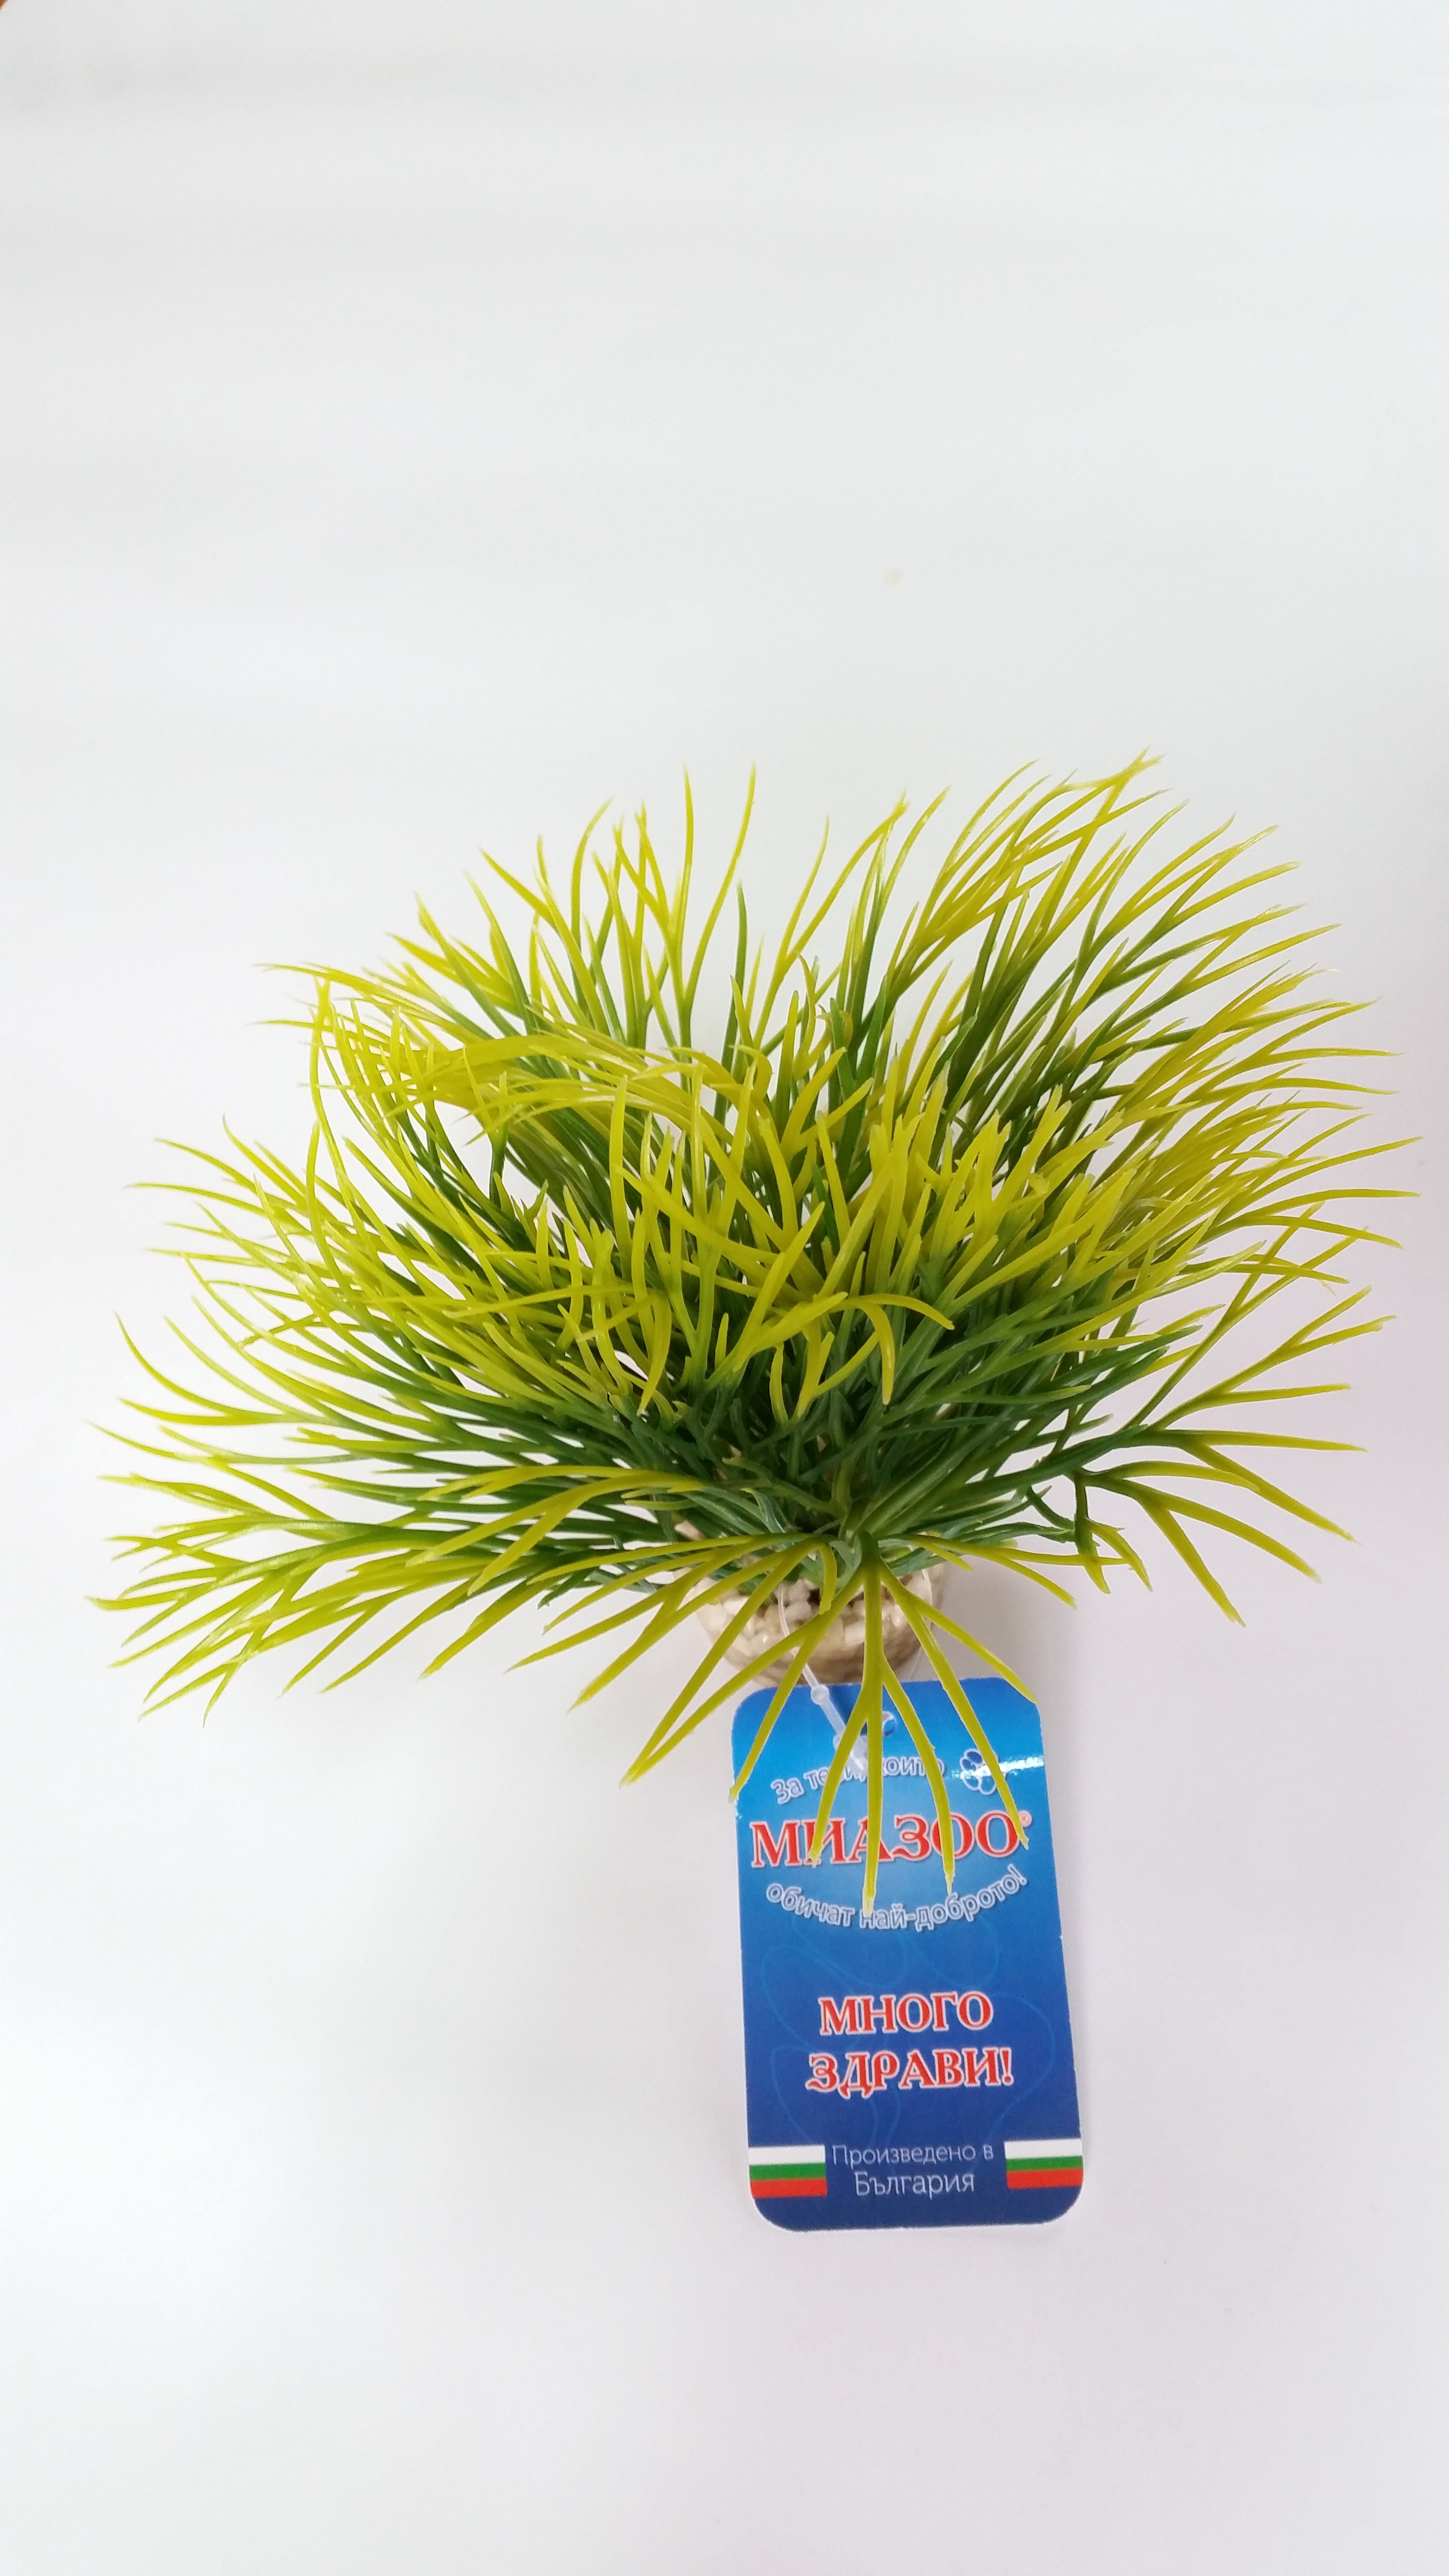 Растение Aquatic Grass 10см от Sydeco, Франция